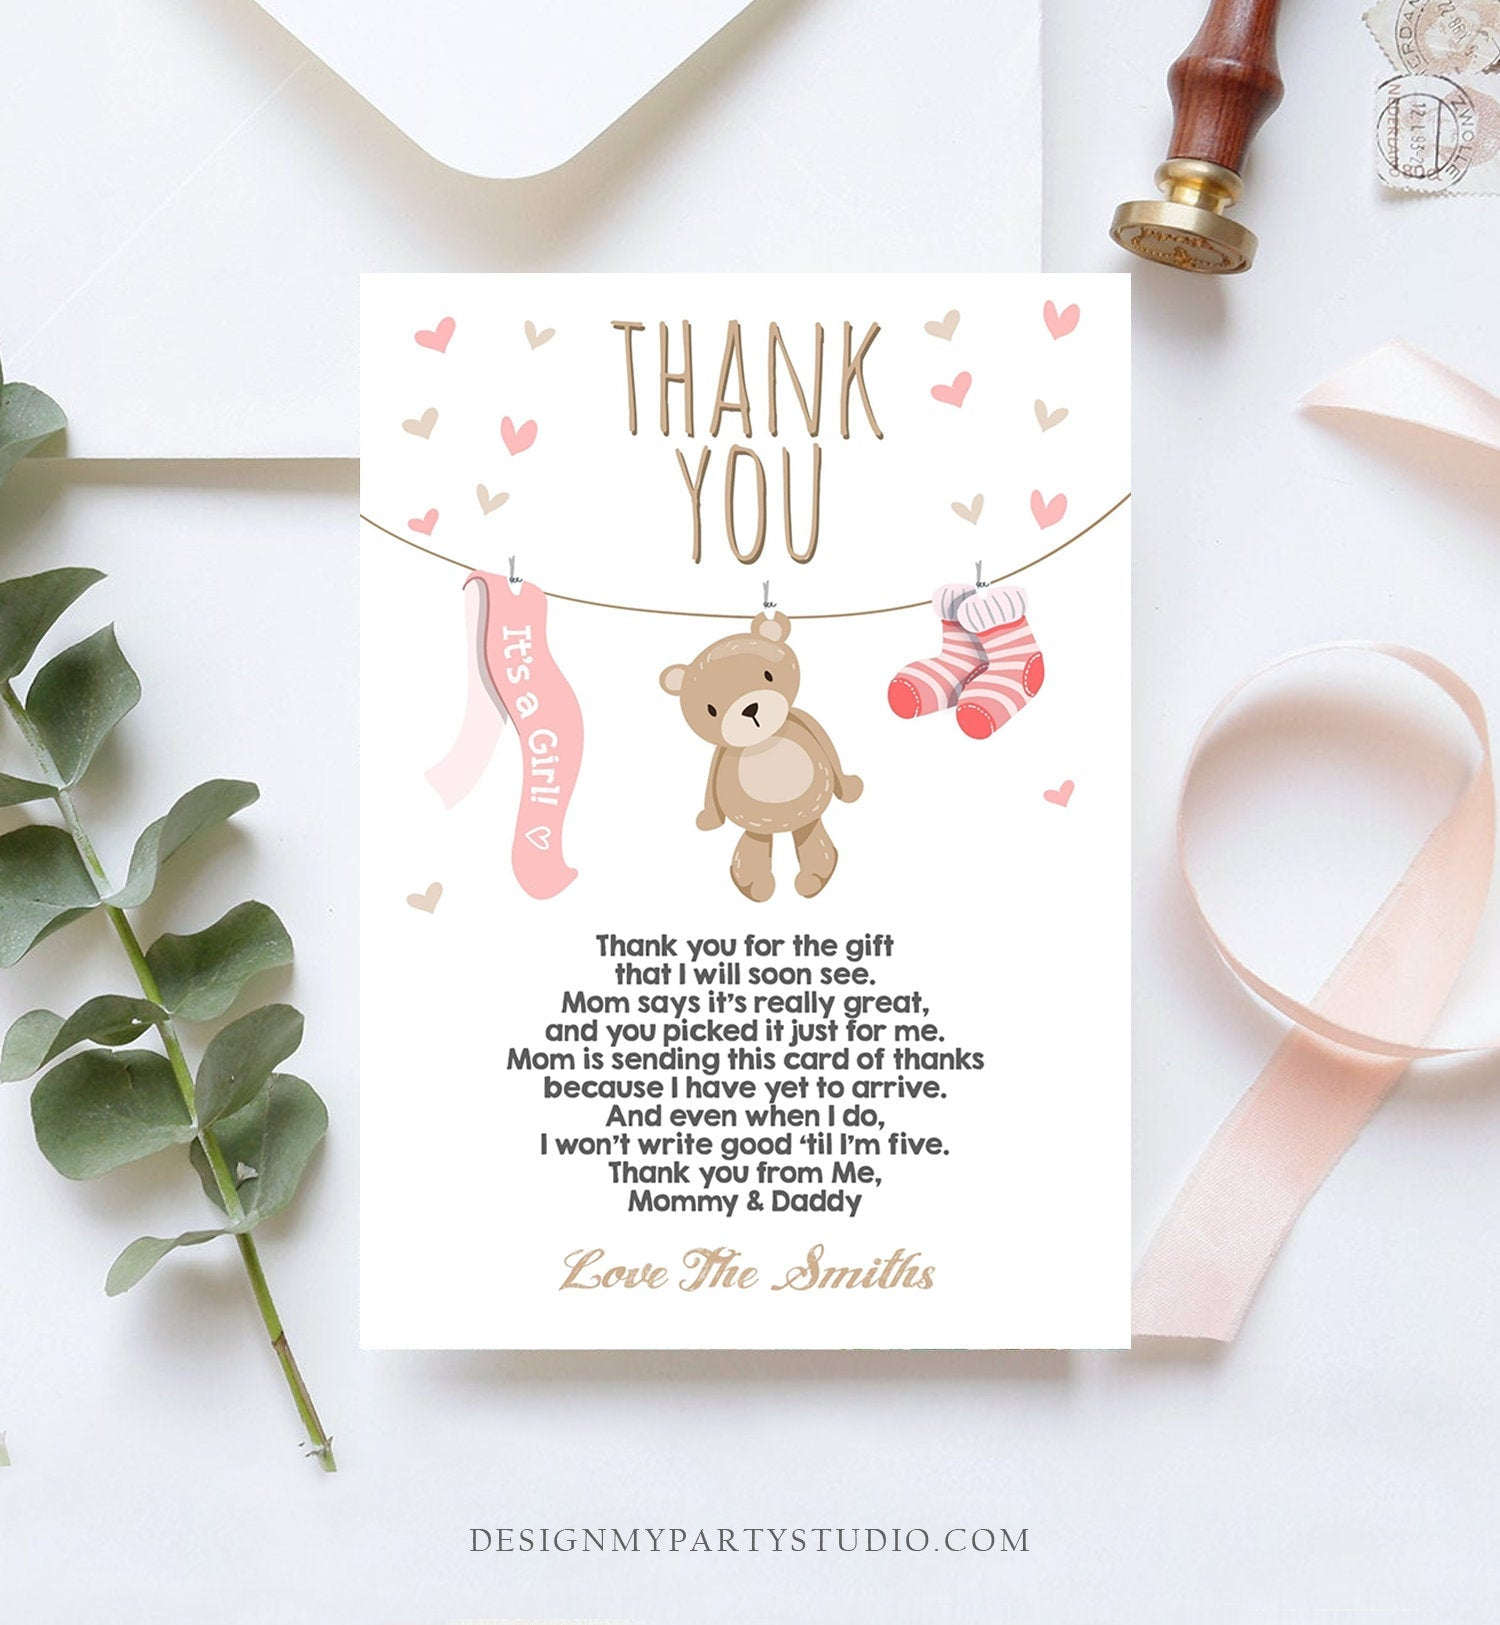 Editable Baby Shower Thank You Card Teddy Bear Thank You Note Shower Pink Girl Woodland Animals Template Instant Download Digital Corjl 0025